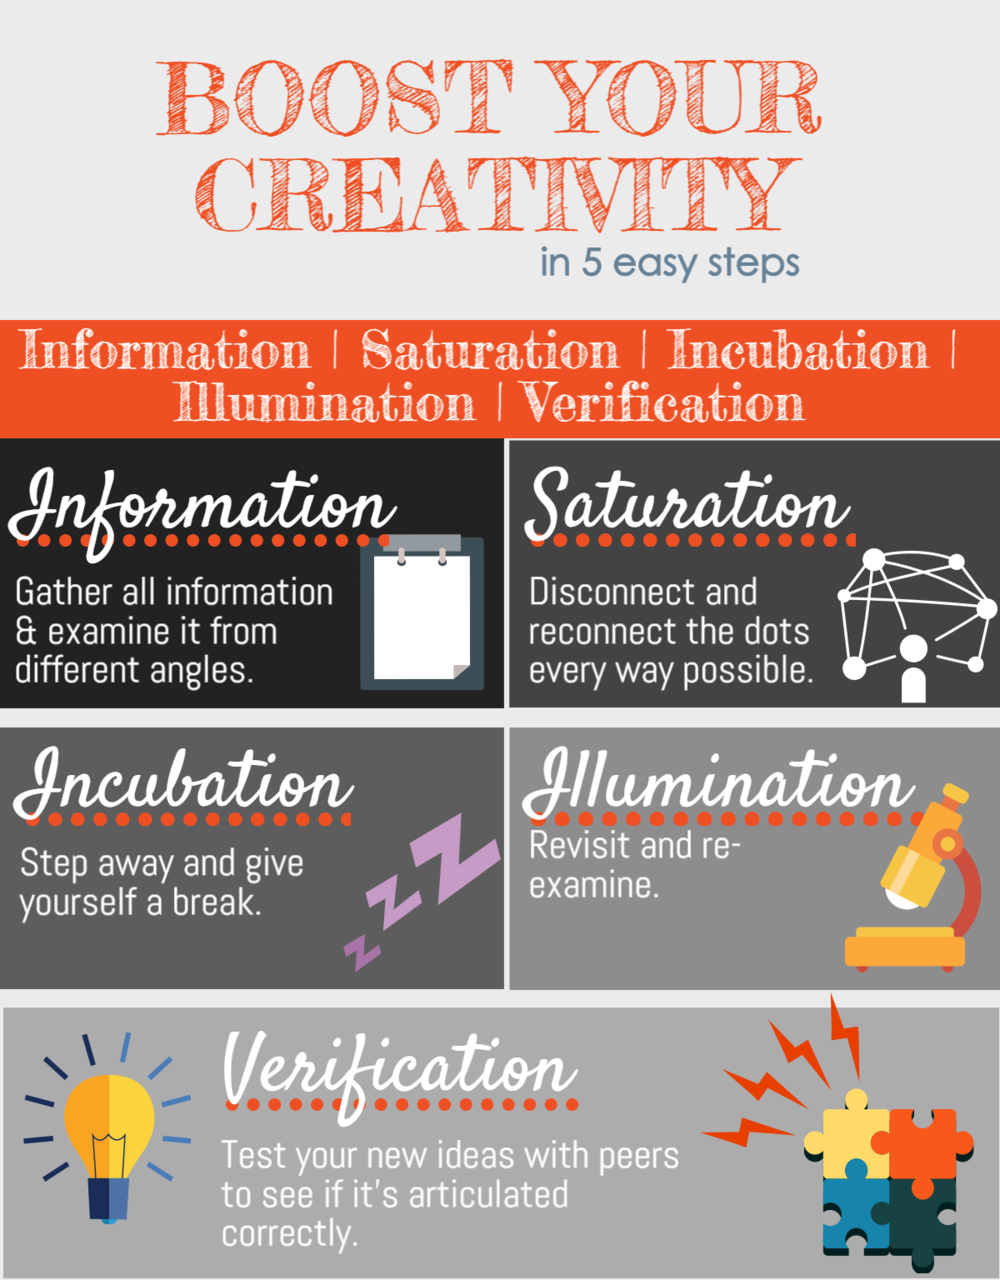 Feeling burnt out, stuck, or unproductive? Boost your creativity with tips from Mark Johnstone, pictured above. The 5 steps include information, saturation, incubation, illumination and verification.